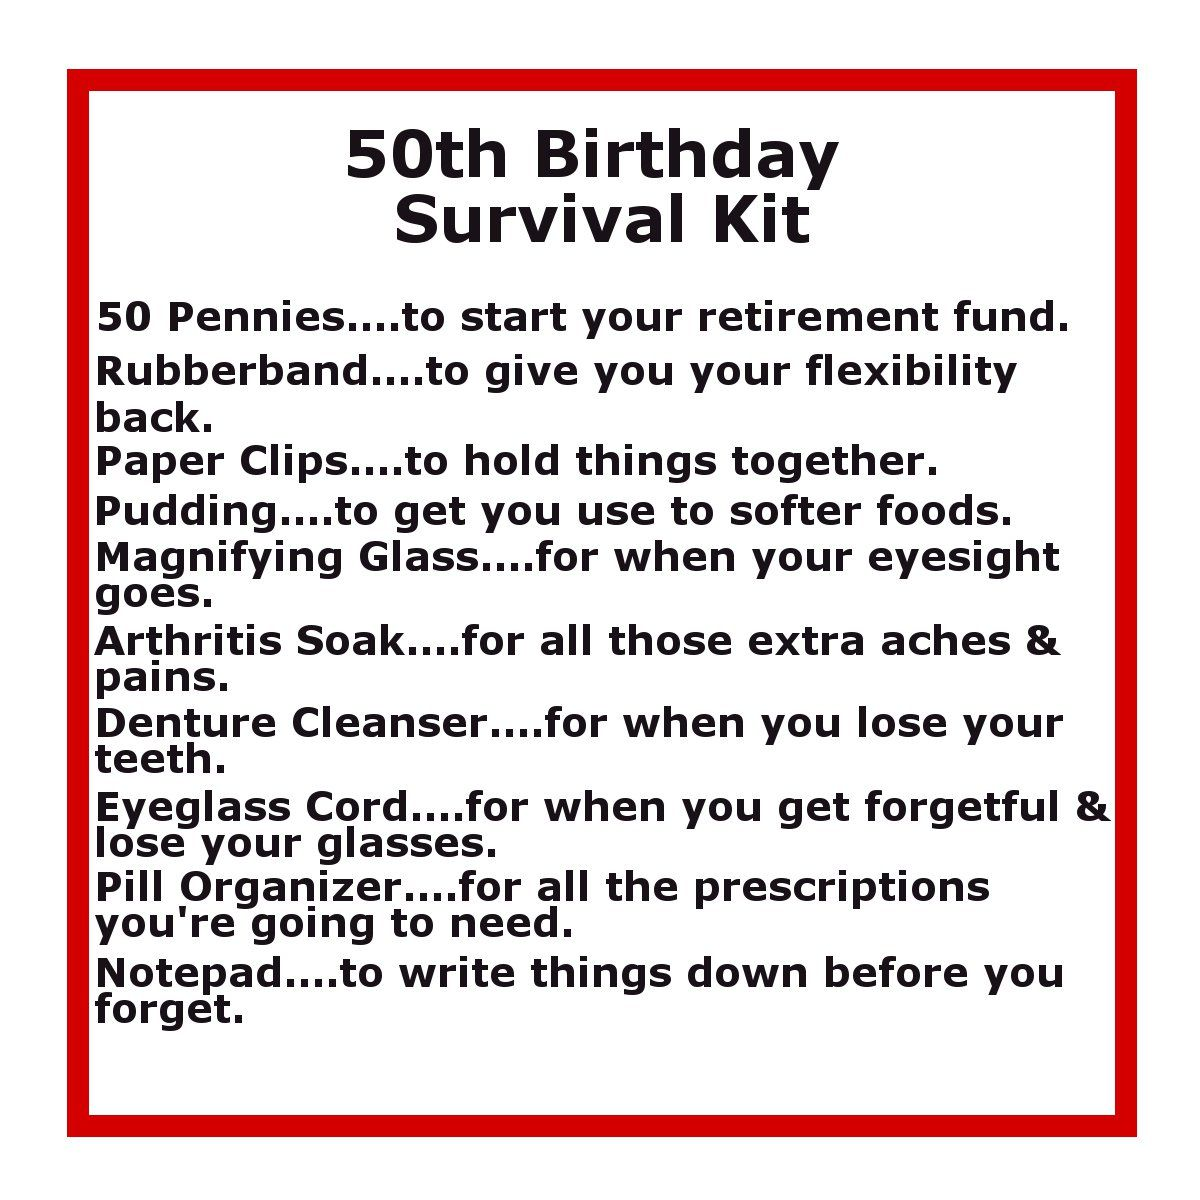 50th Birthday Survival Kit – 50th Birthday Greetings Messages